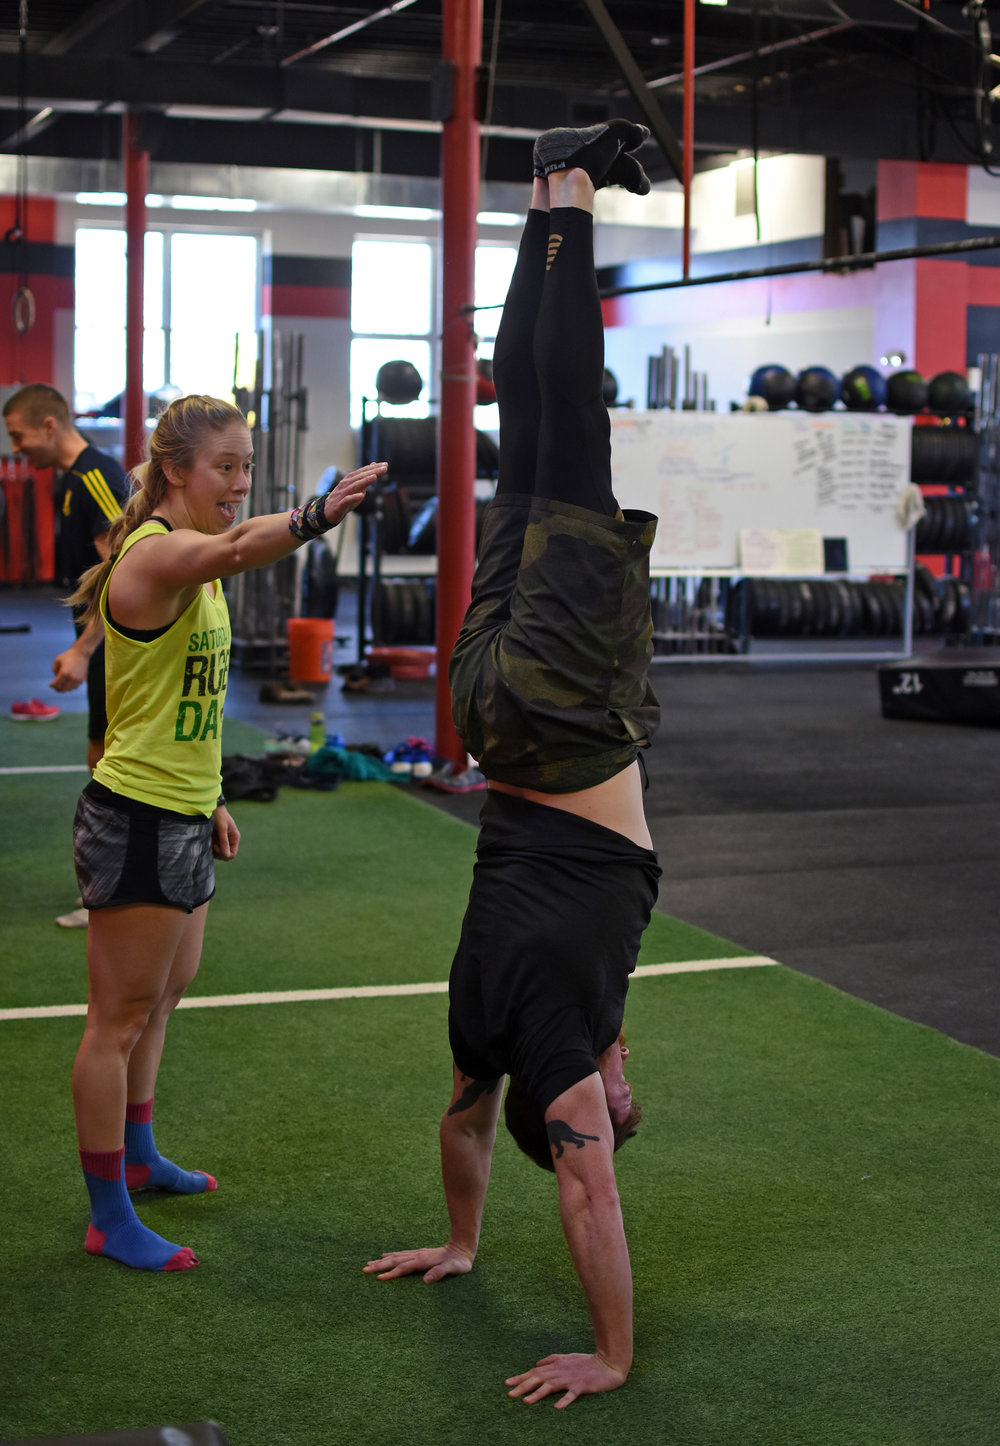 A well-executed handstand begins with excellent shoulder and thoracic mobility and midline stability.